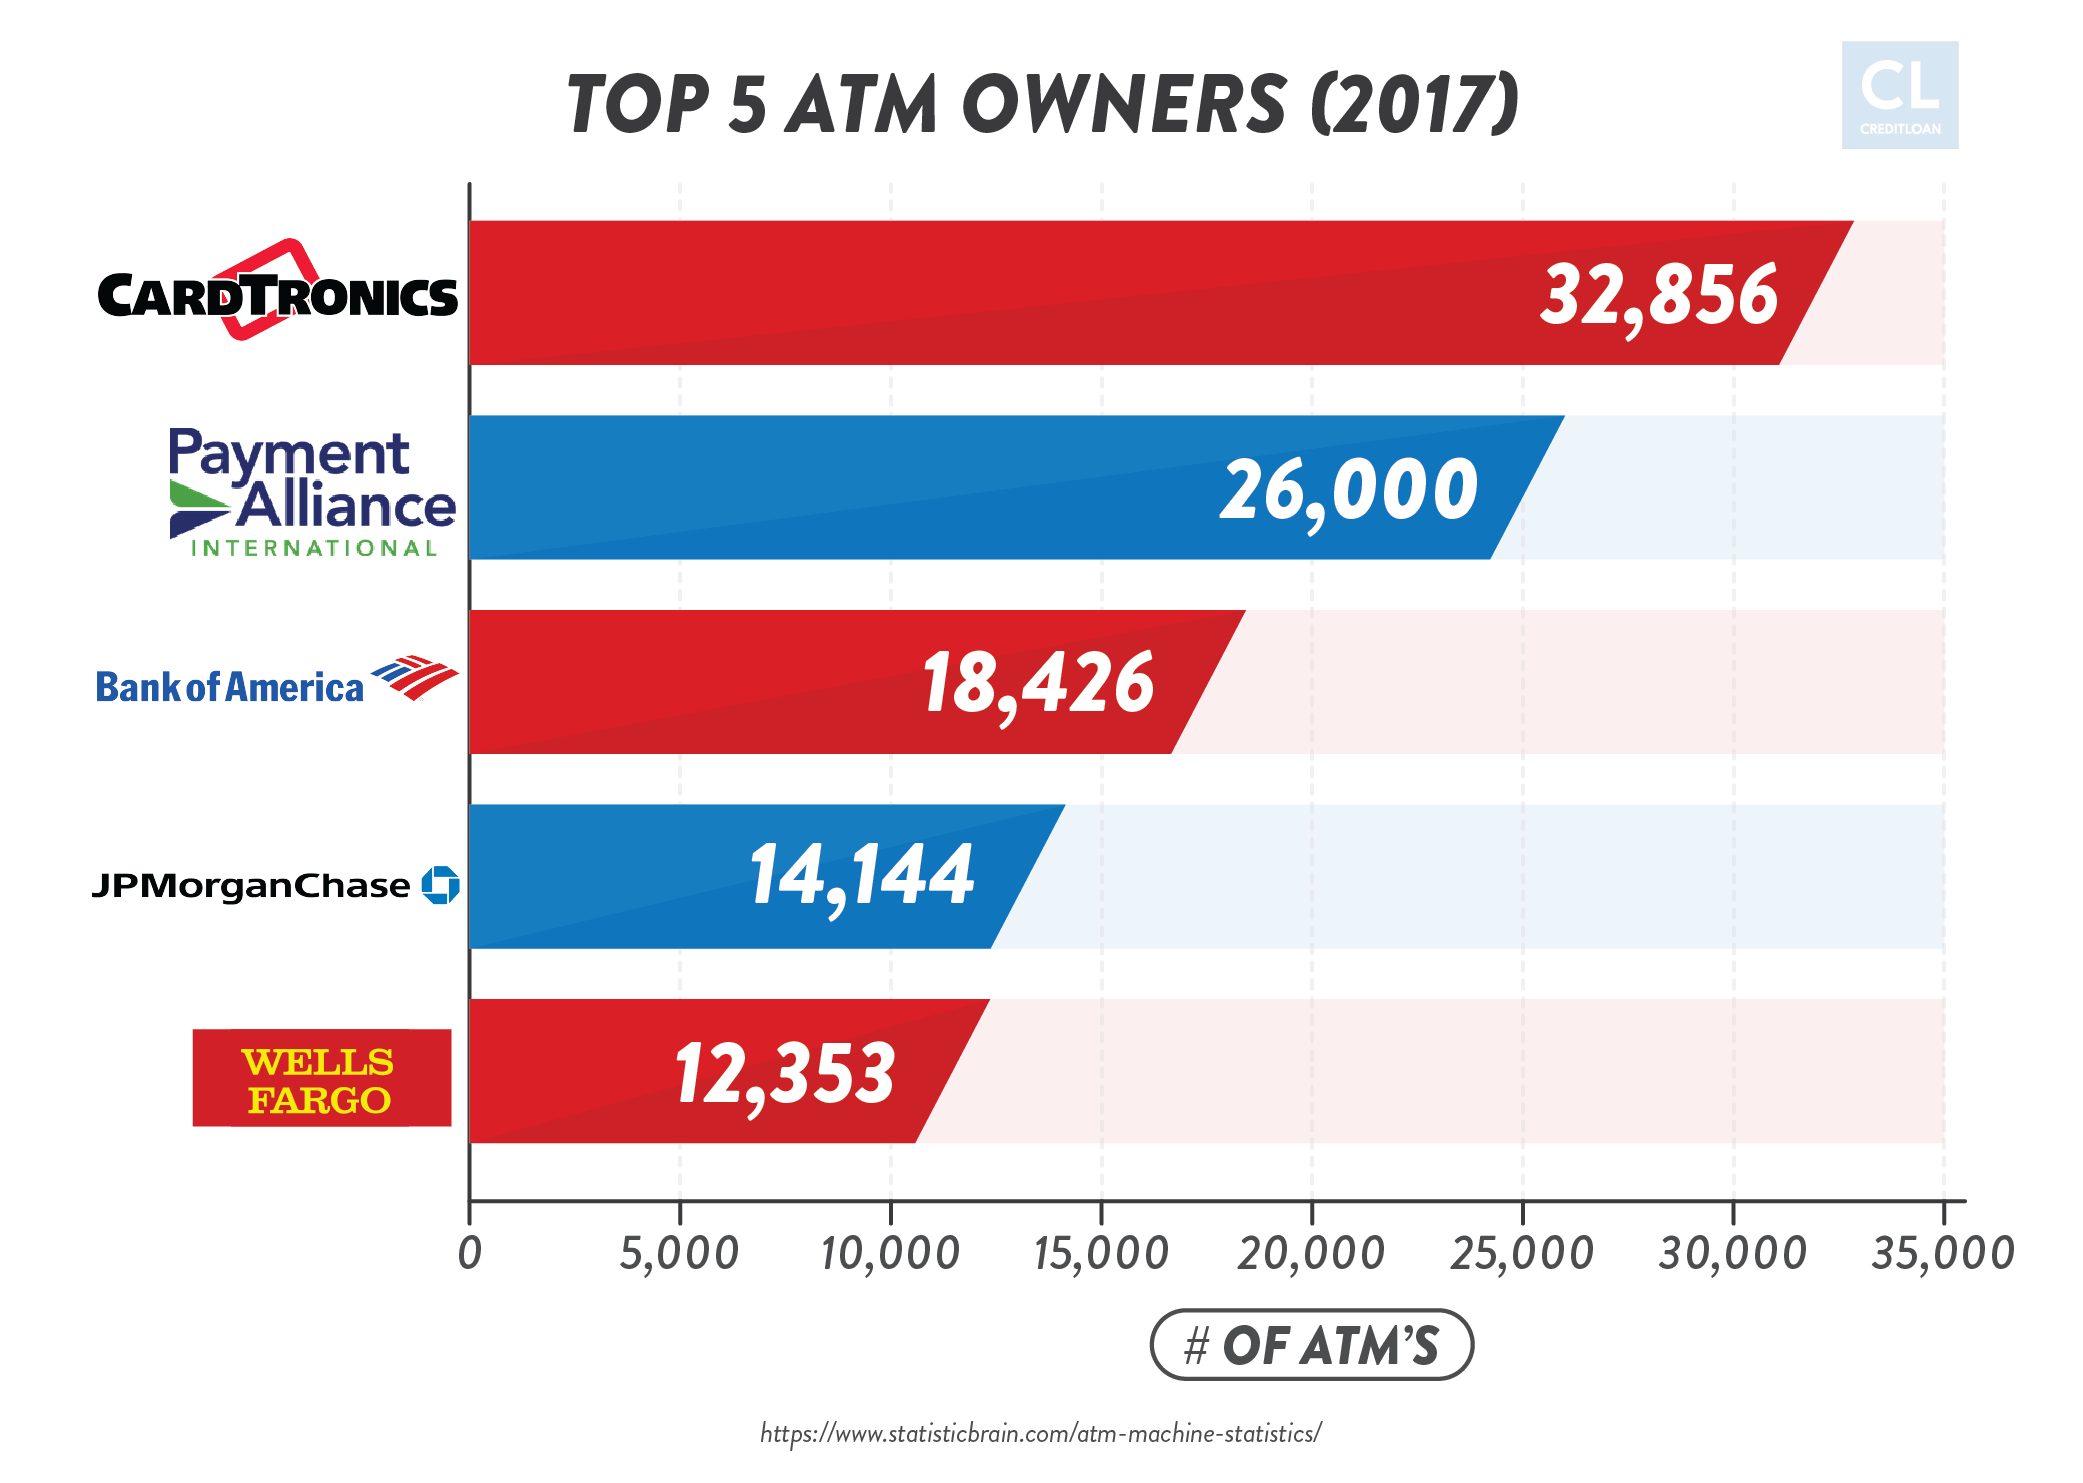 2017 Top 5 ATM Owners